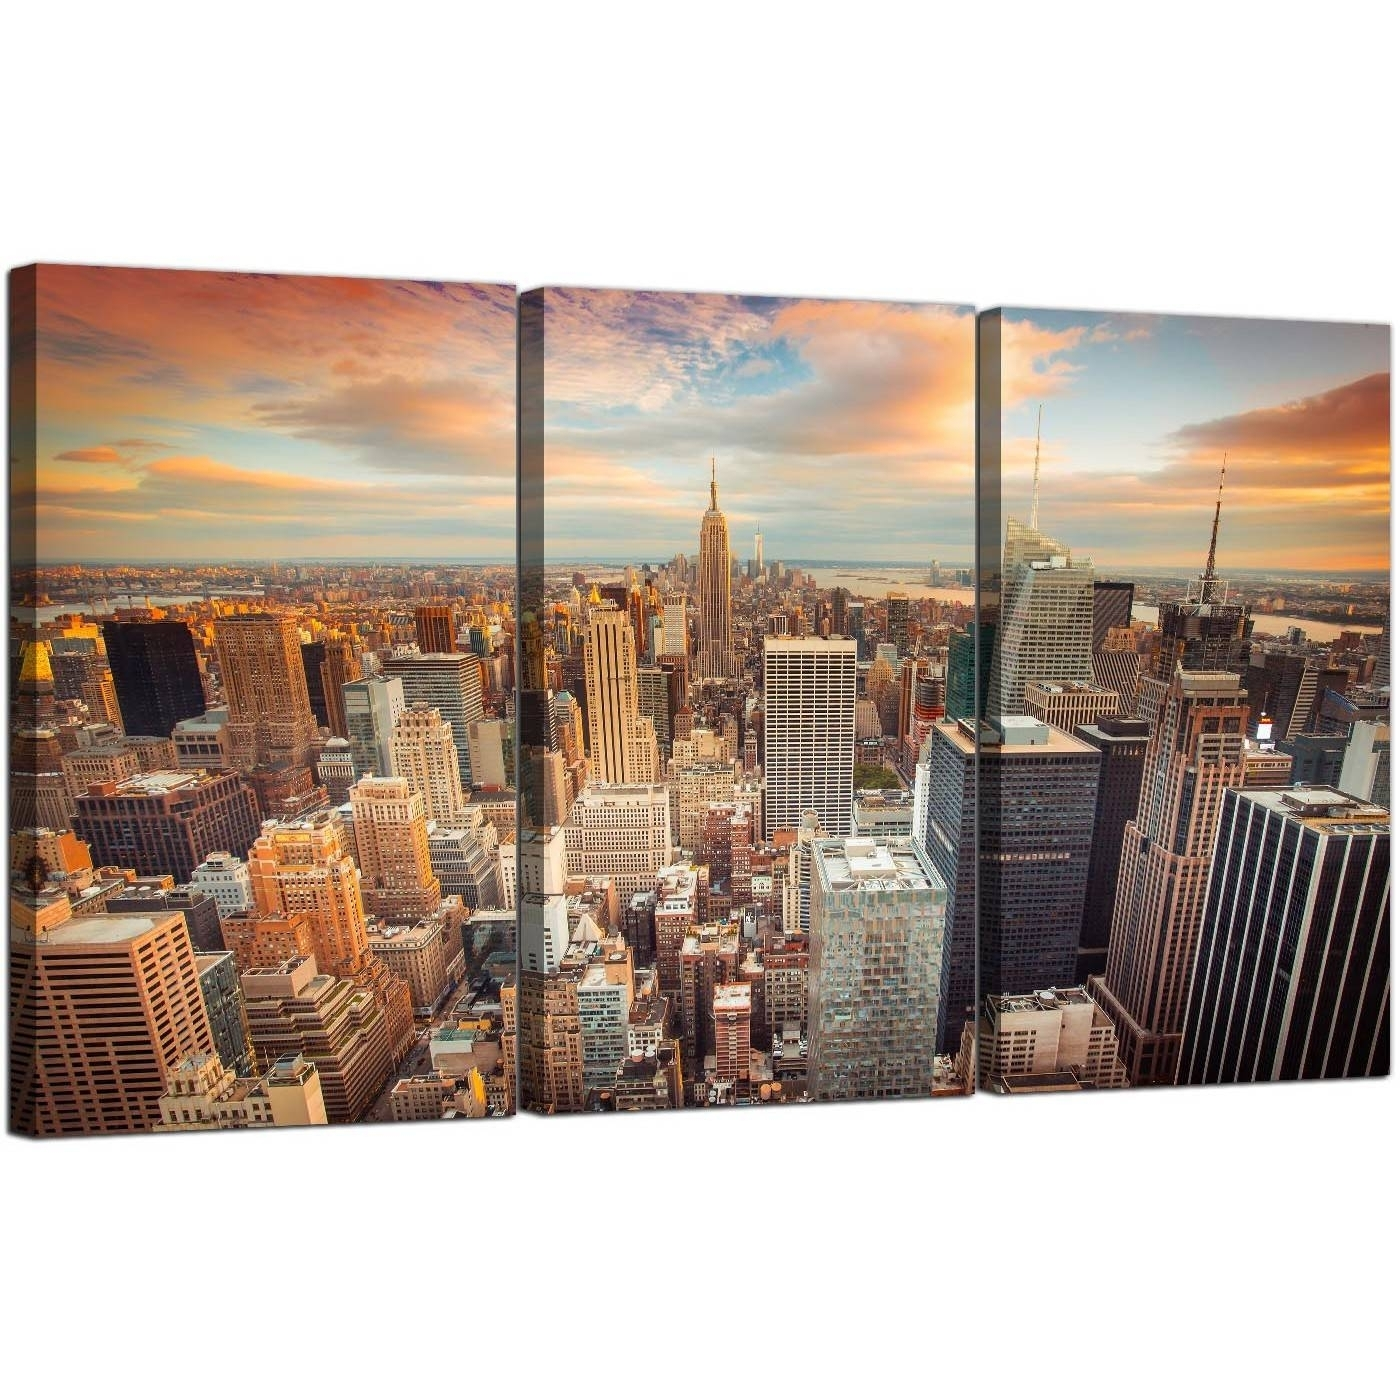 20 Collection Of New York City Canvas Wall Art With Regard To Latest Canvas Wall Art Of New York City (Gallery 13 of 15)